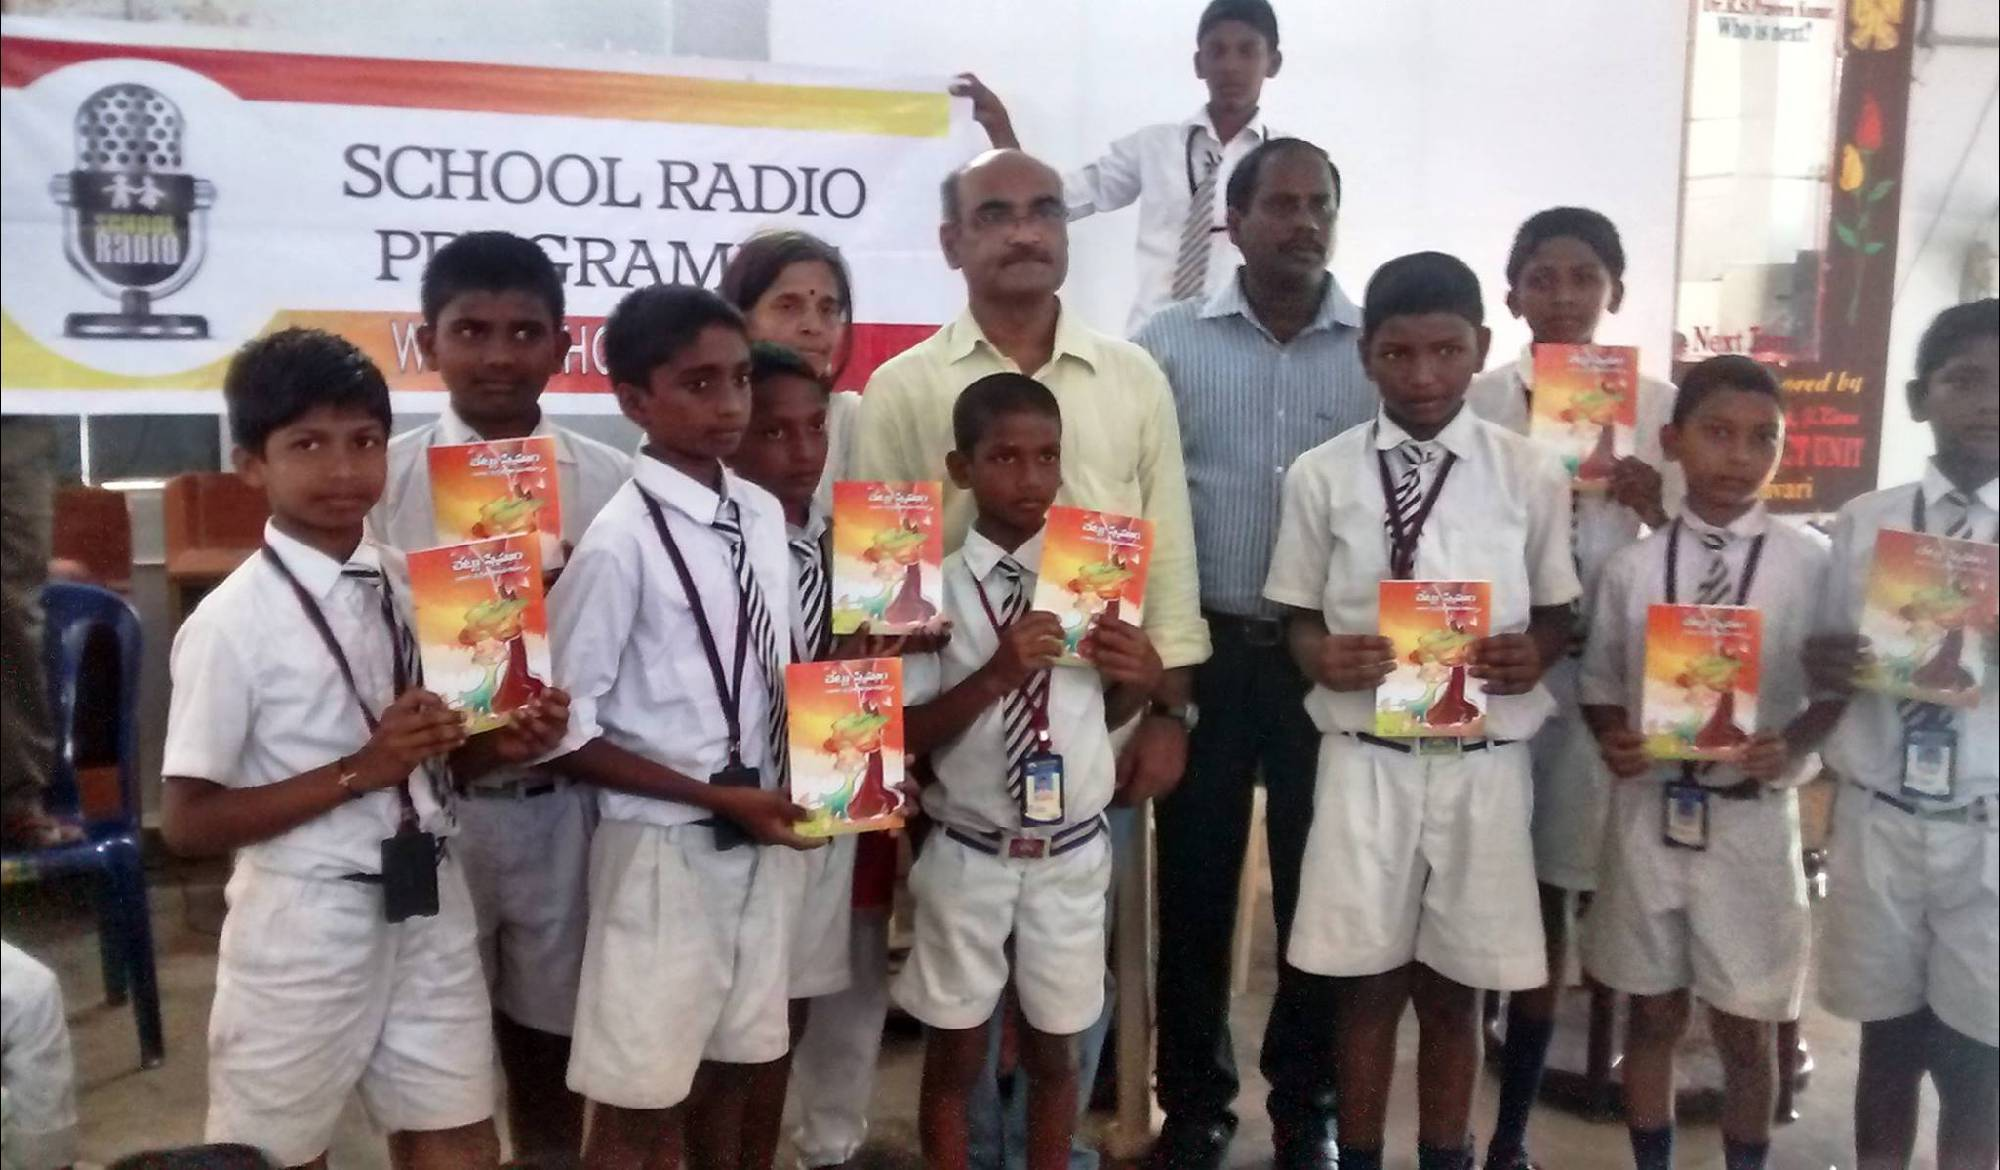 Chintalapudi School Radio Club